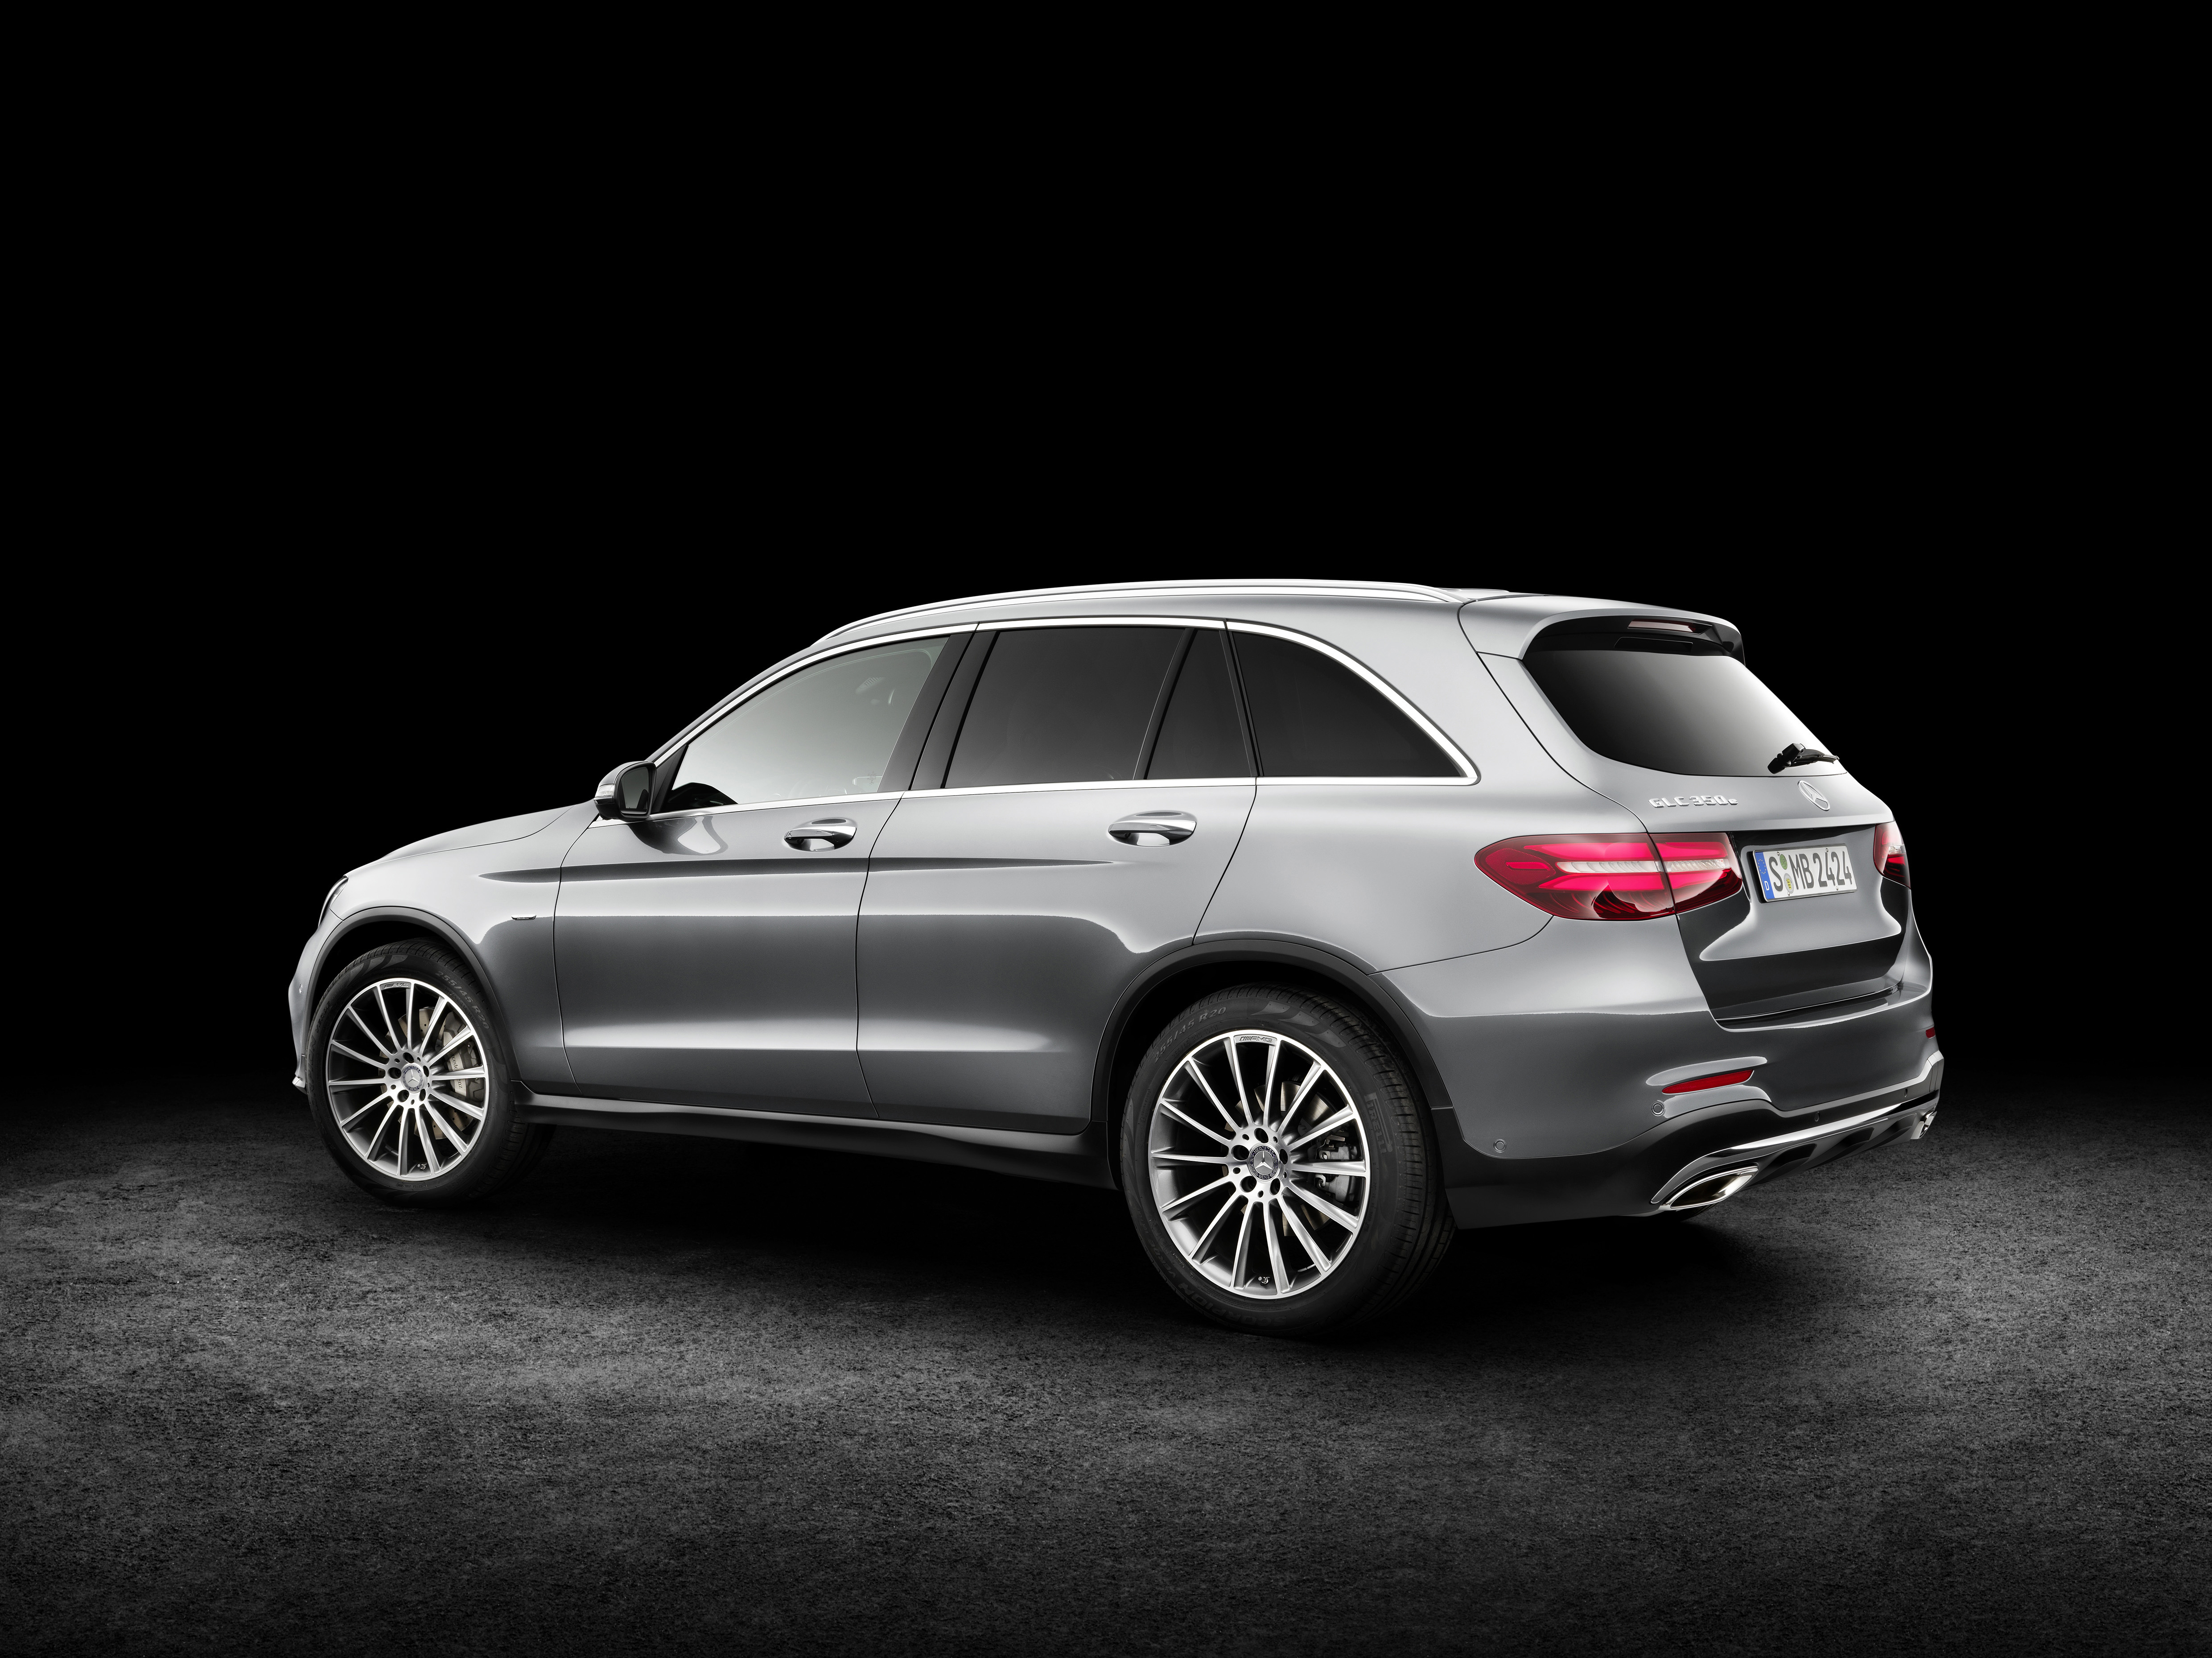 Mercedes-Benz GLC unveiled – the SUV sweet spot? Image 351733